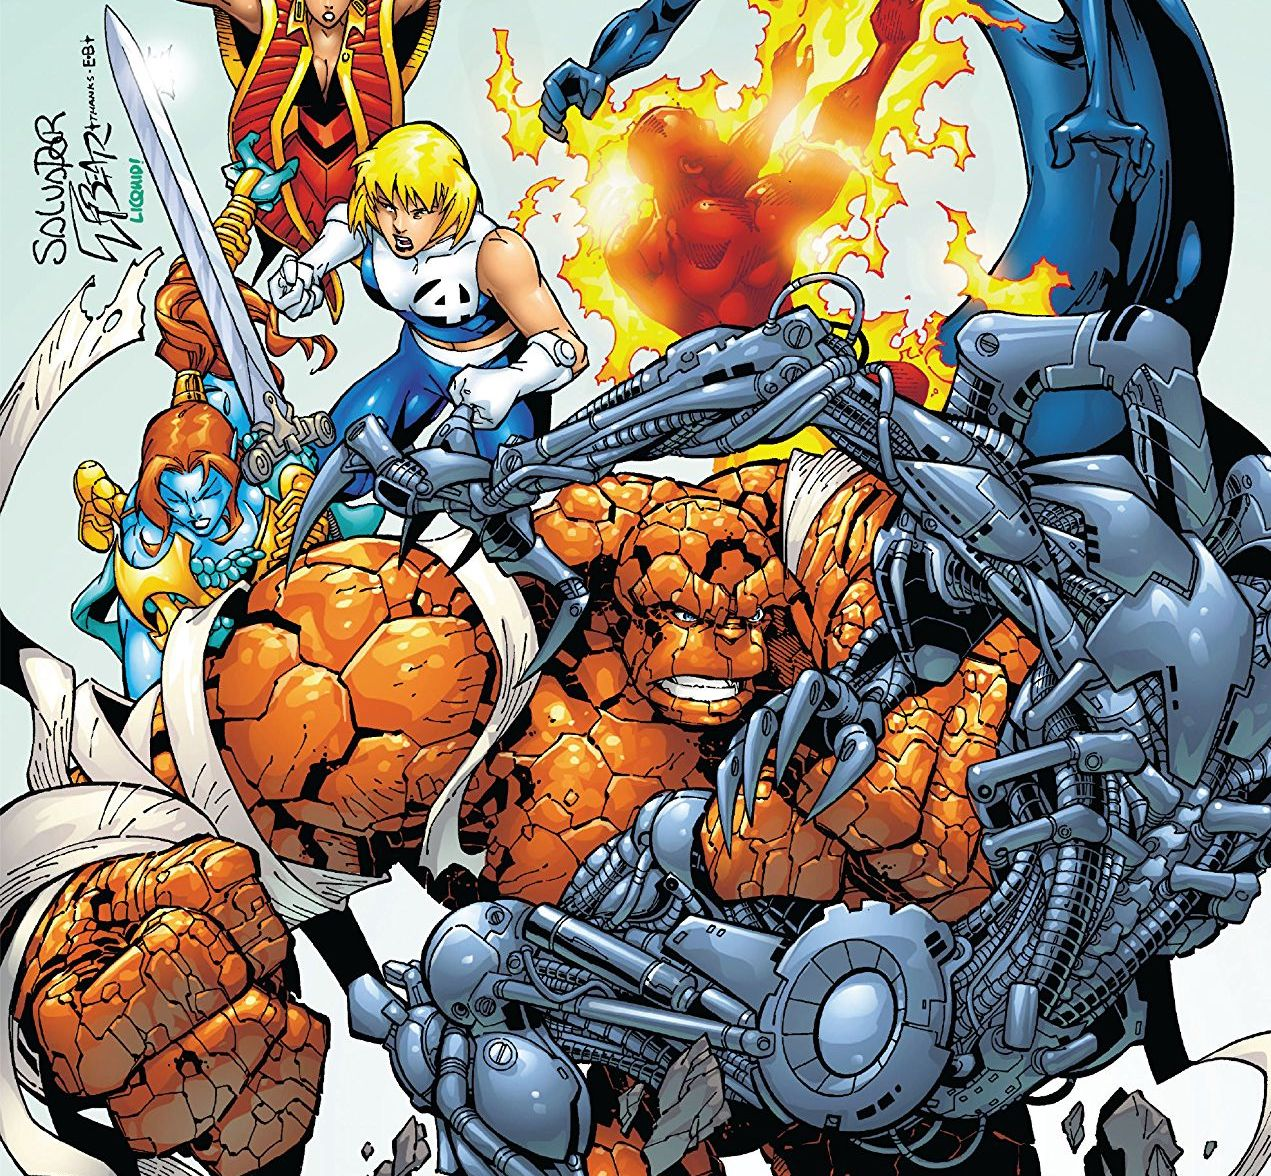 Fantastic Four: Heroes Return - The Complete Collection Vol. 2 Review